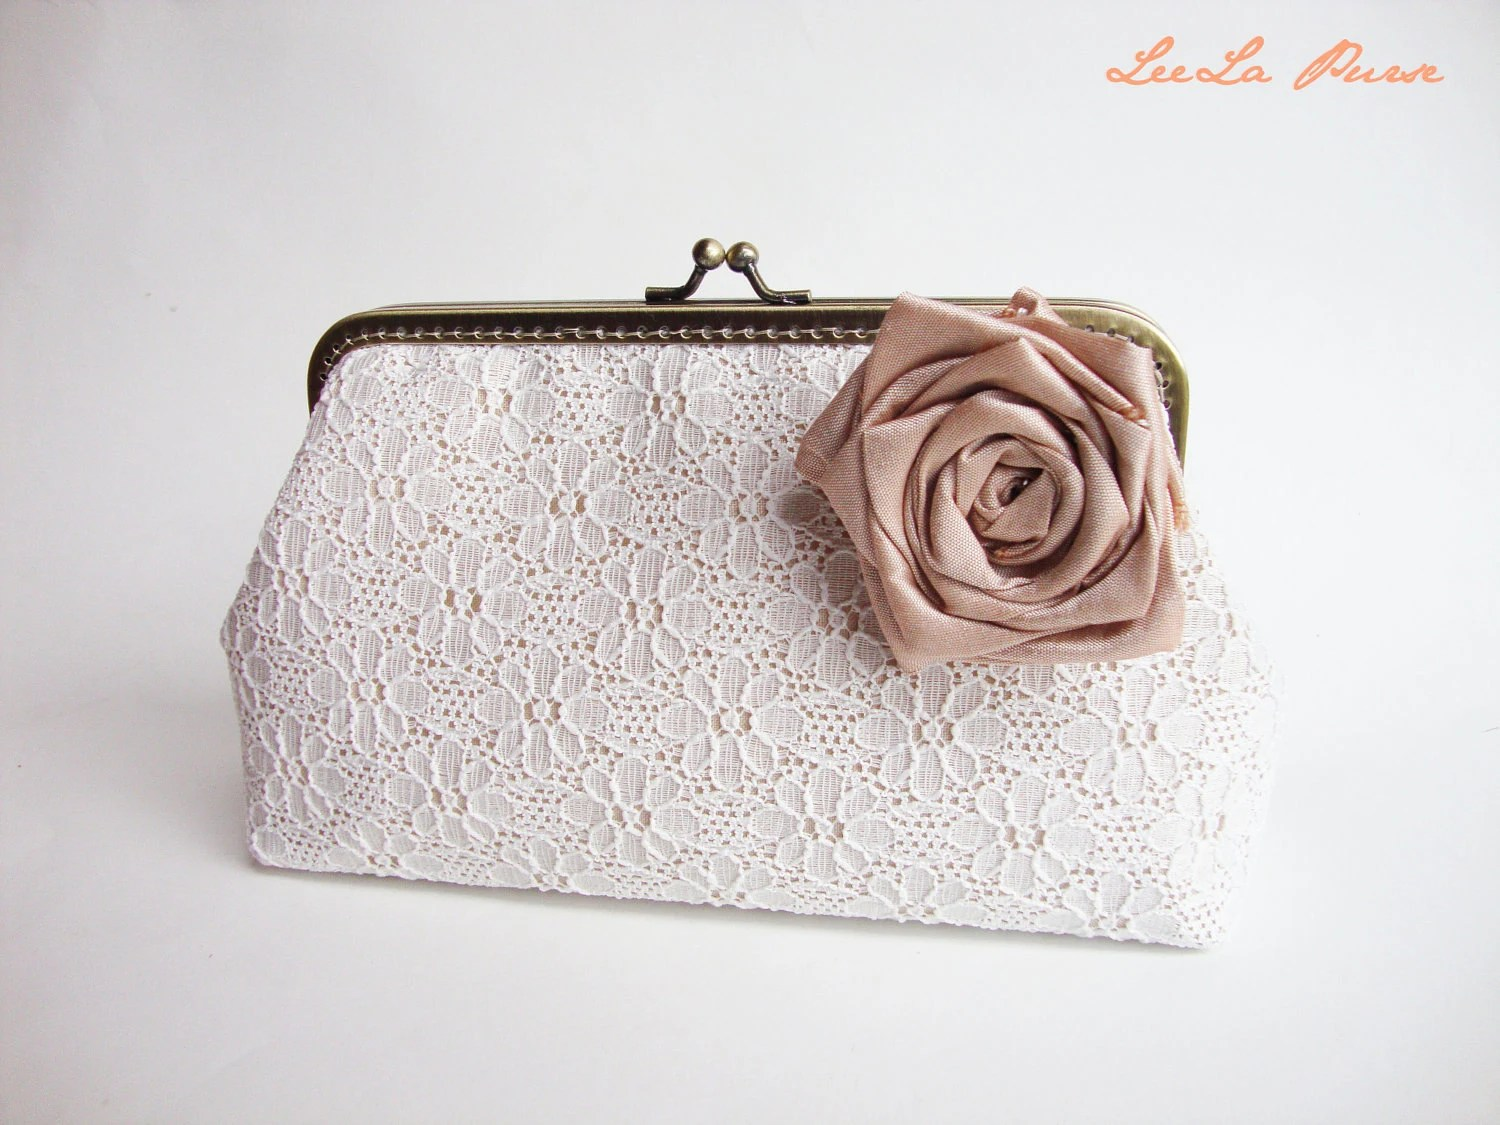 Vintage bridal clutch - Off White Lace Clutch with Detachable Silk Flower Brooch - Ready to Ship